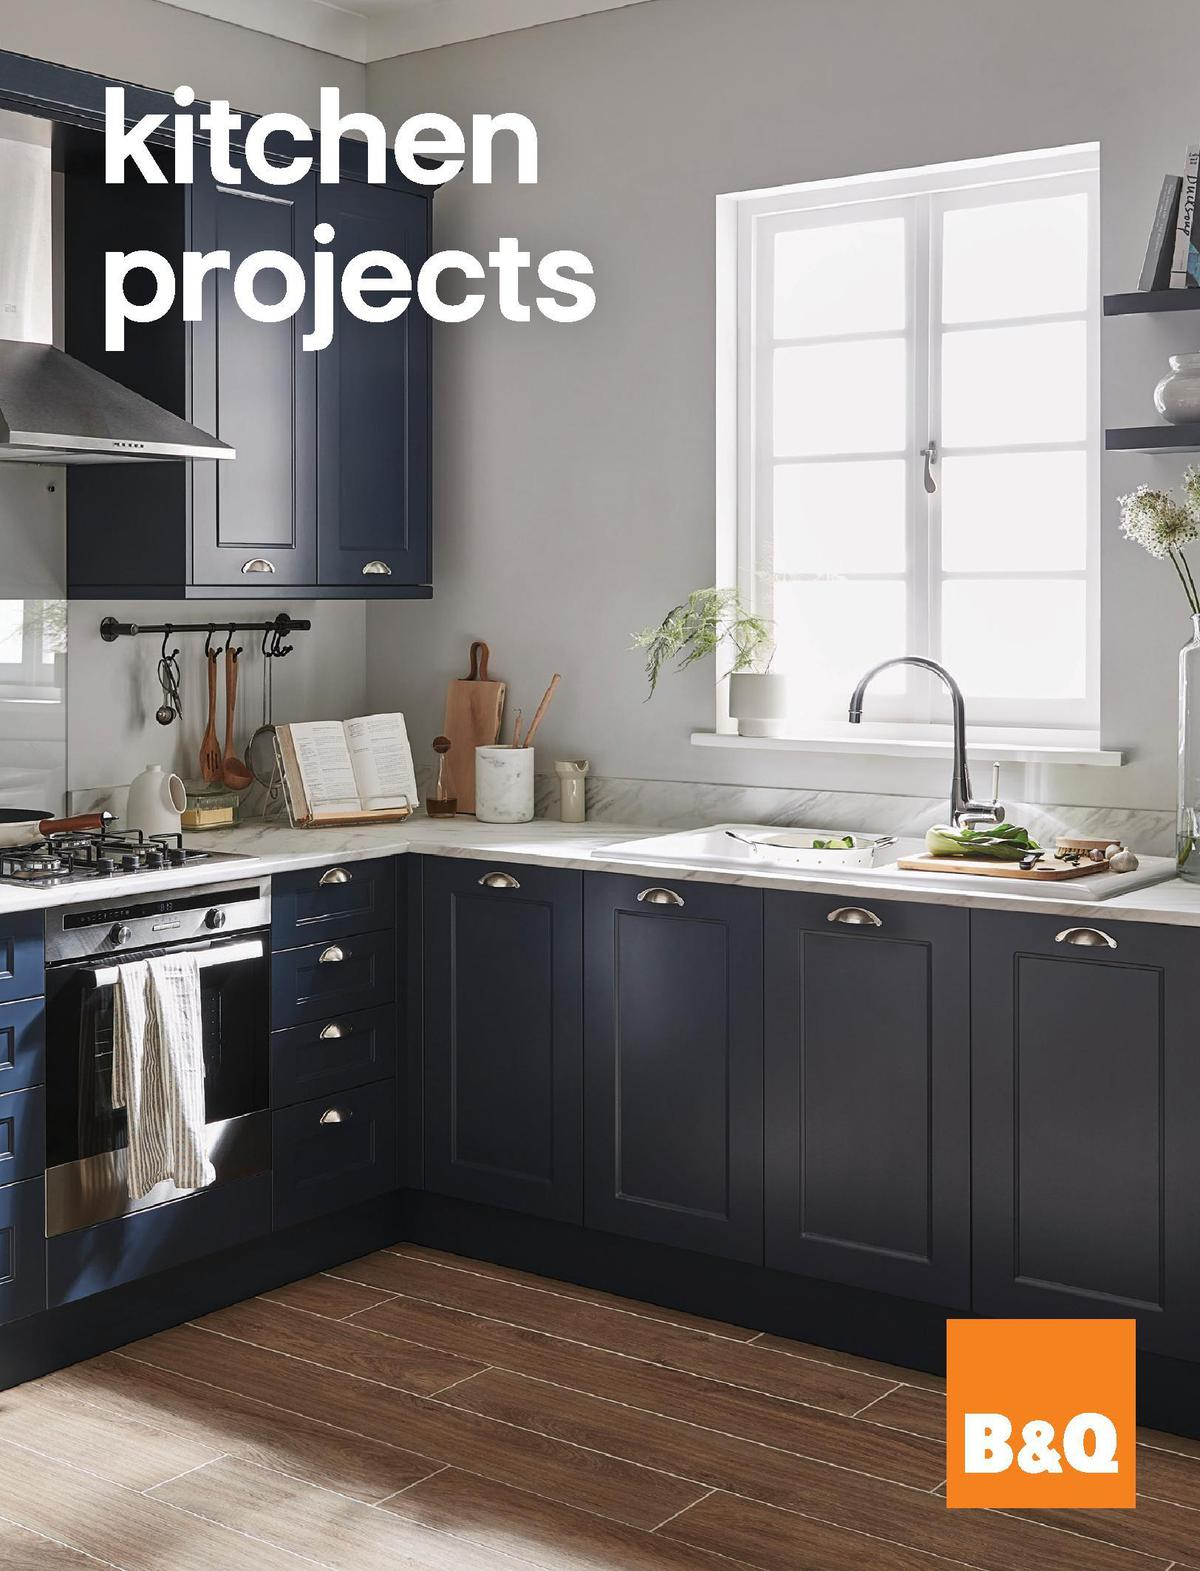 B&Q Kitchen Projects Offers from December 20